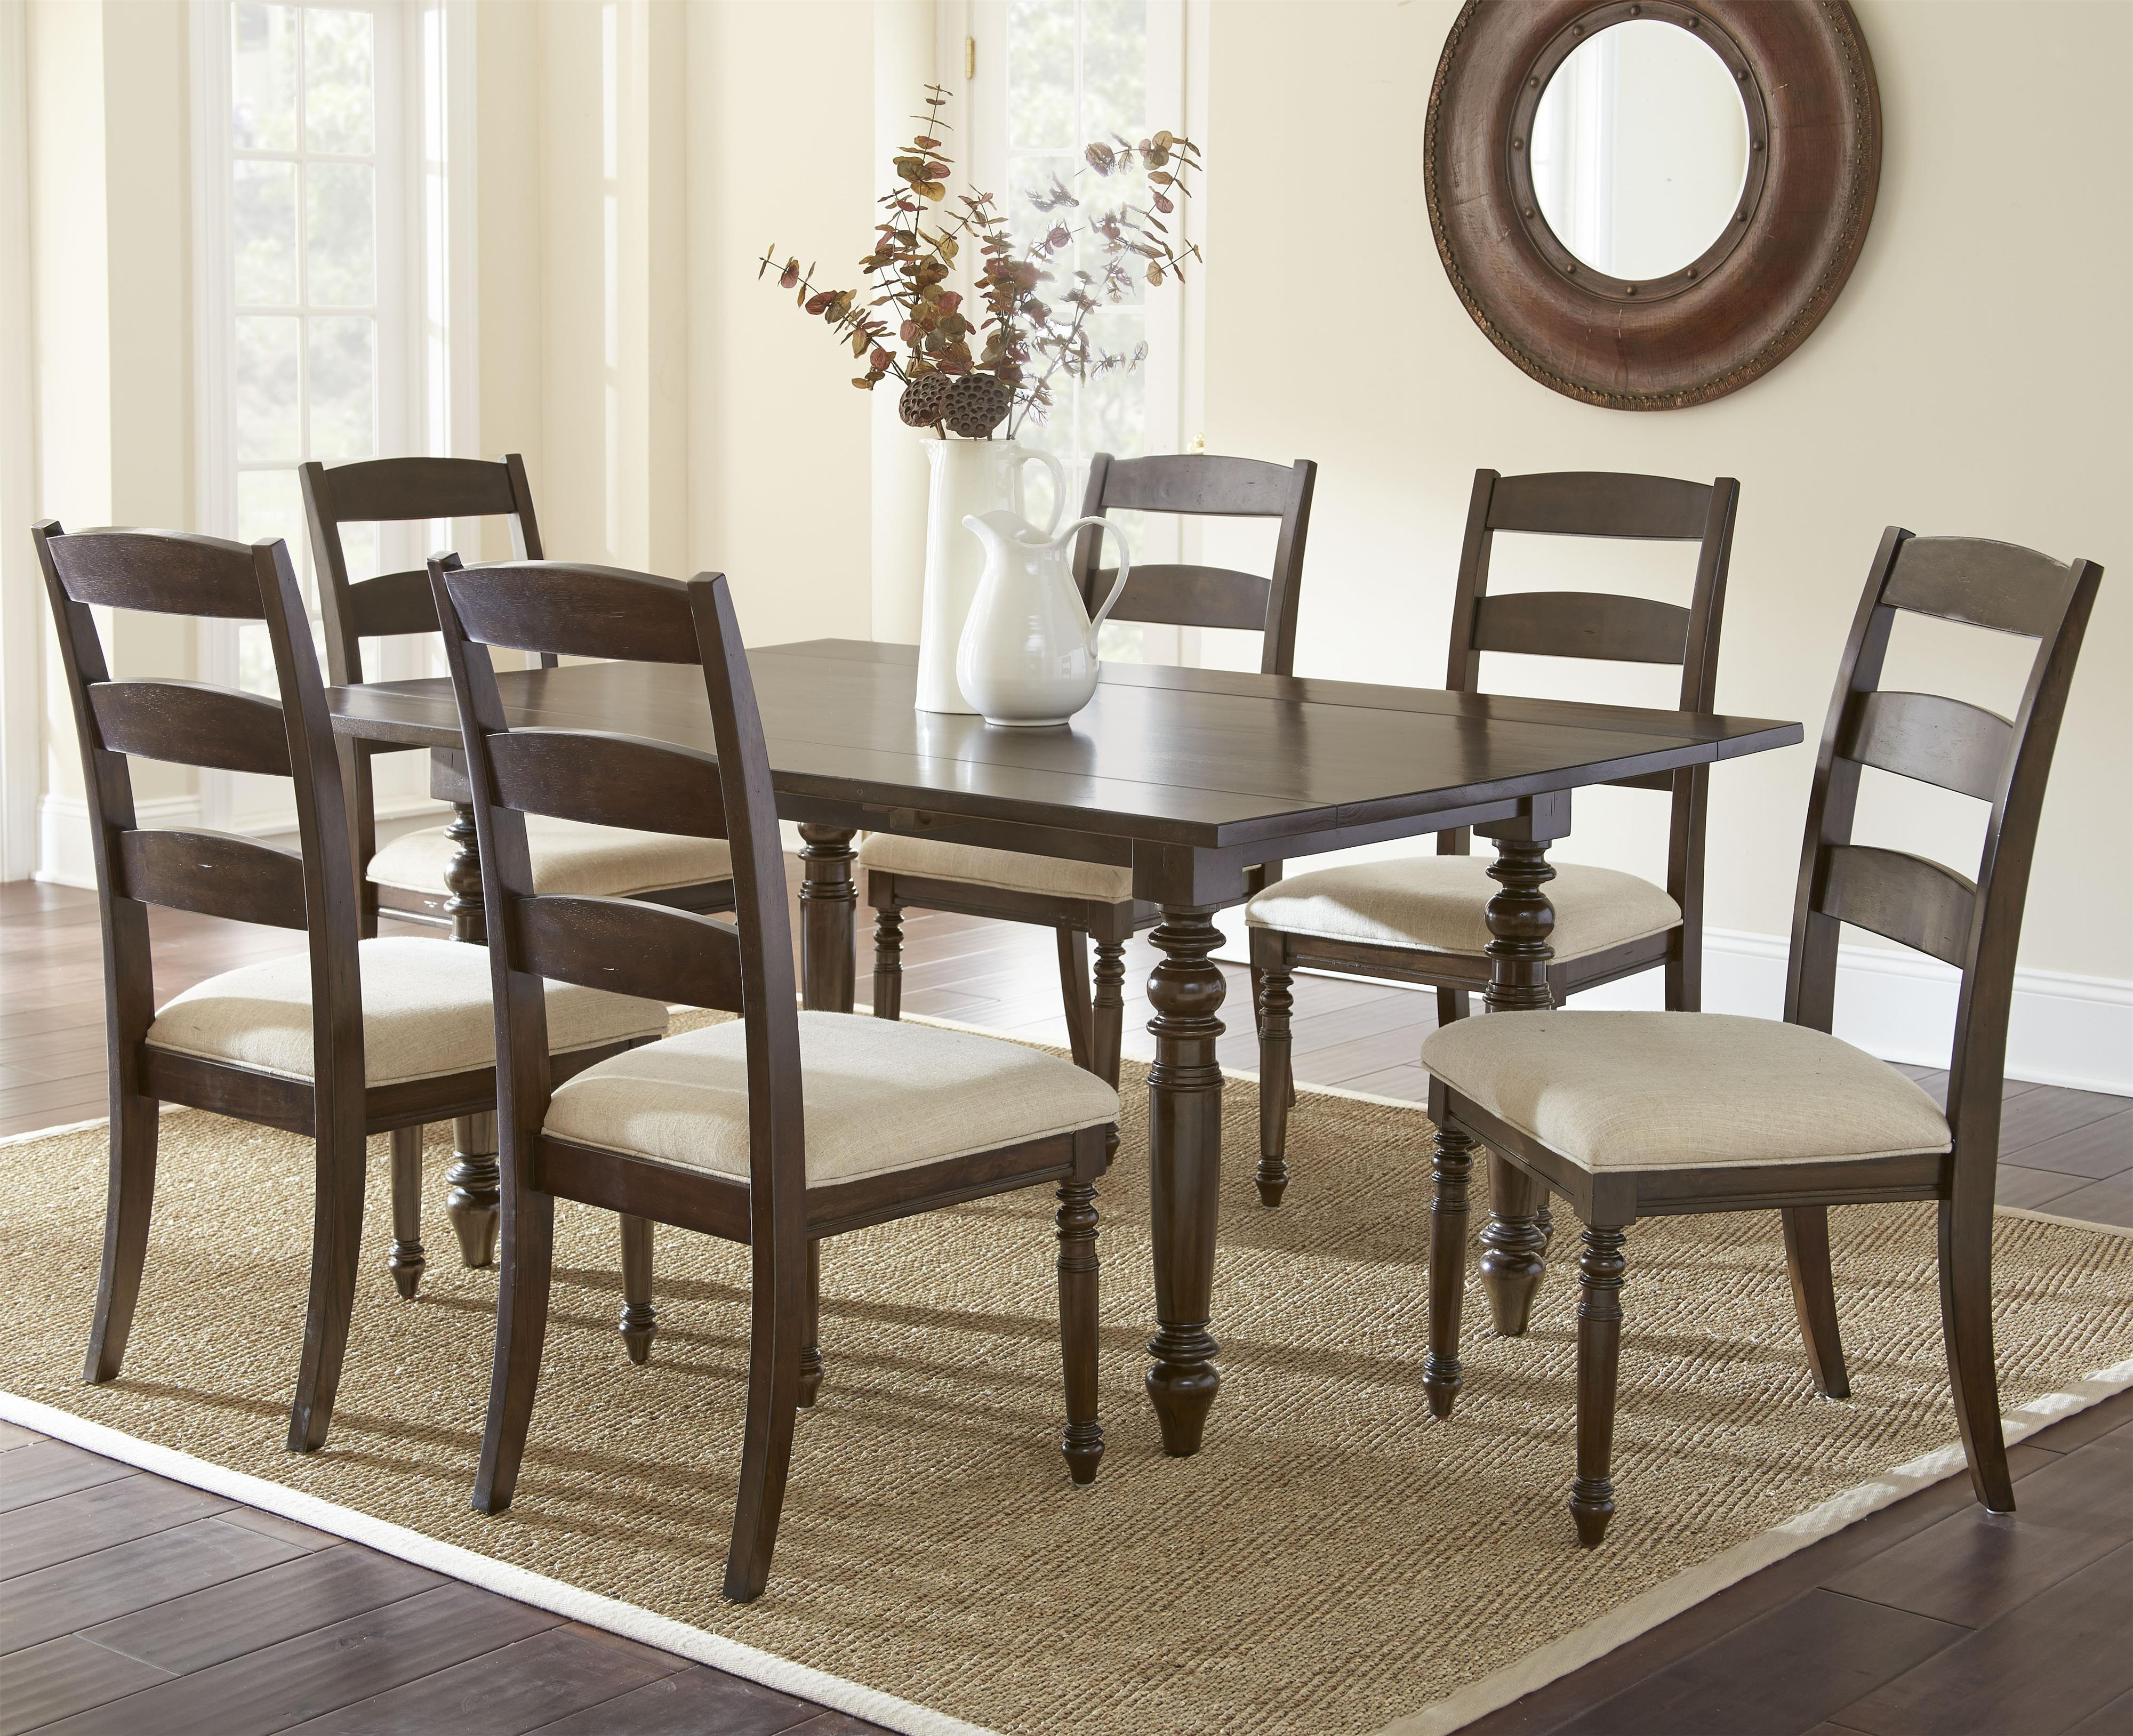 Steve Silver Bexley 7 Piece Dining Set - Item Number: BY550T+6xS